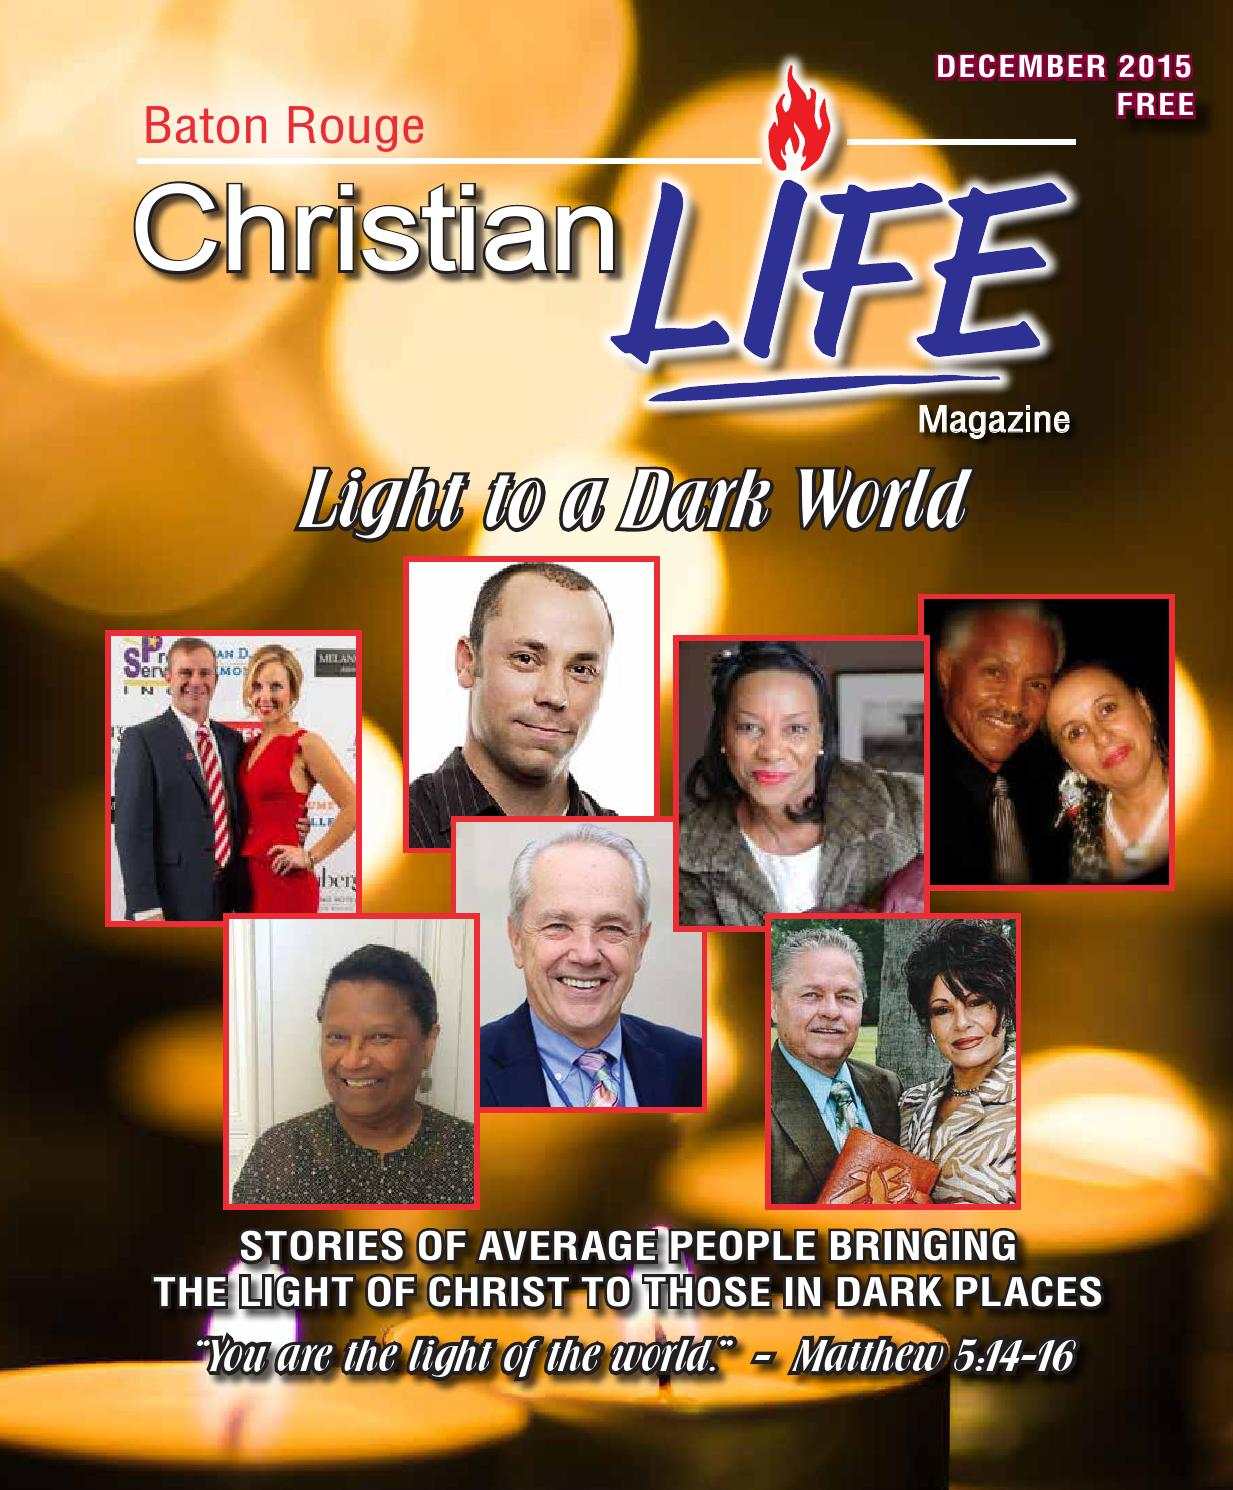 Places To Travel In December 2015: Baton Rouge Christian Life Magazine